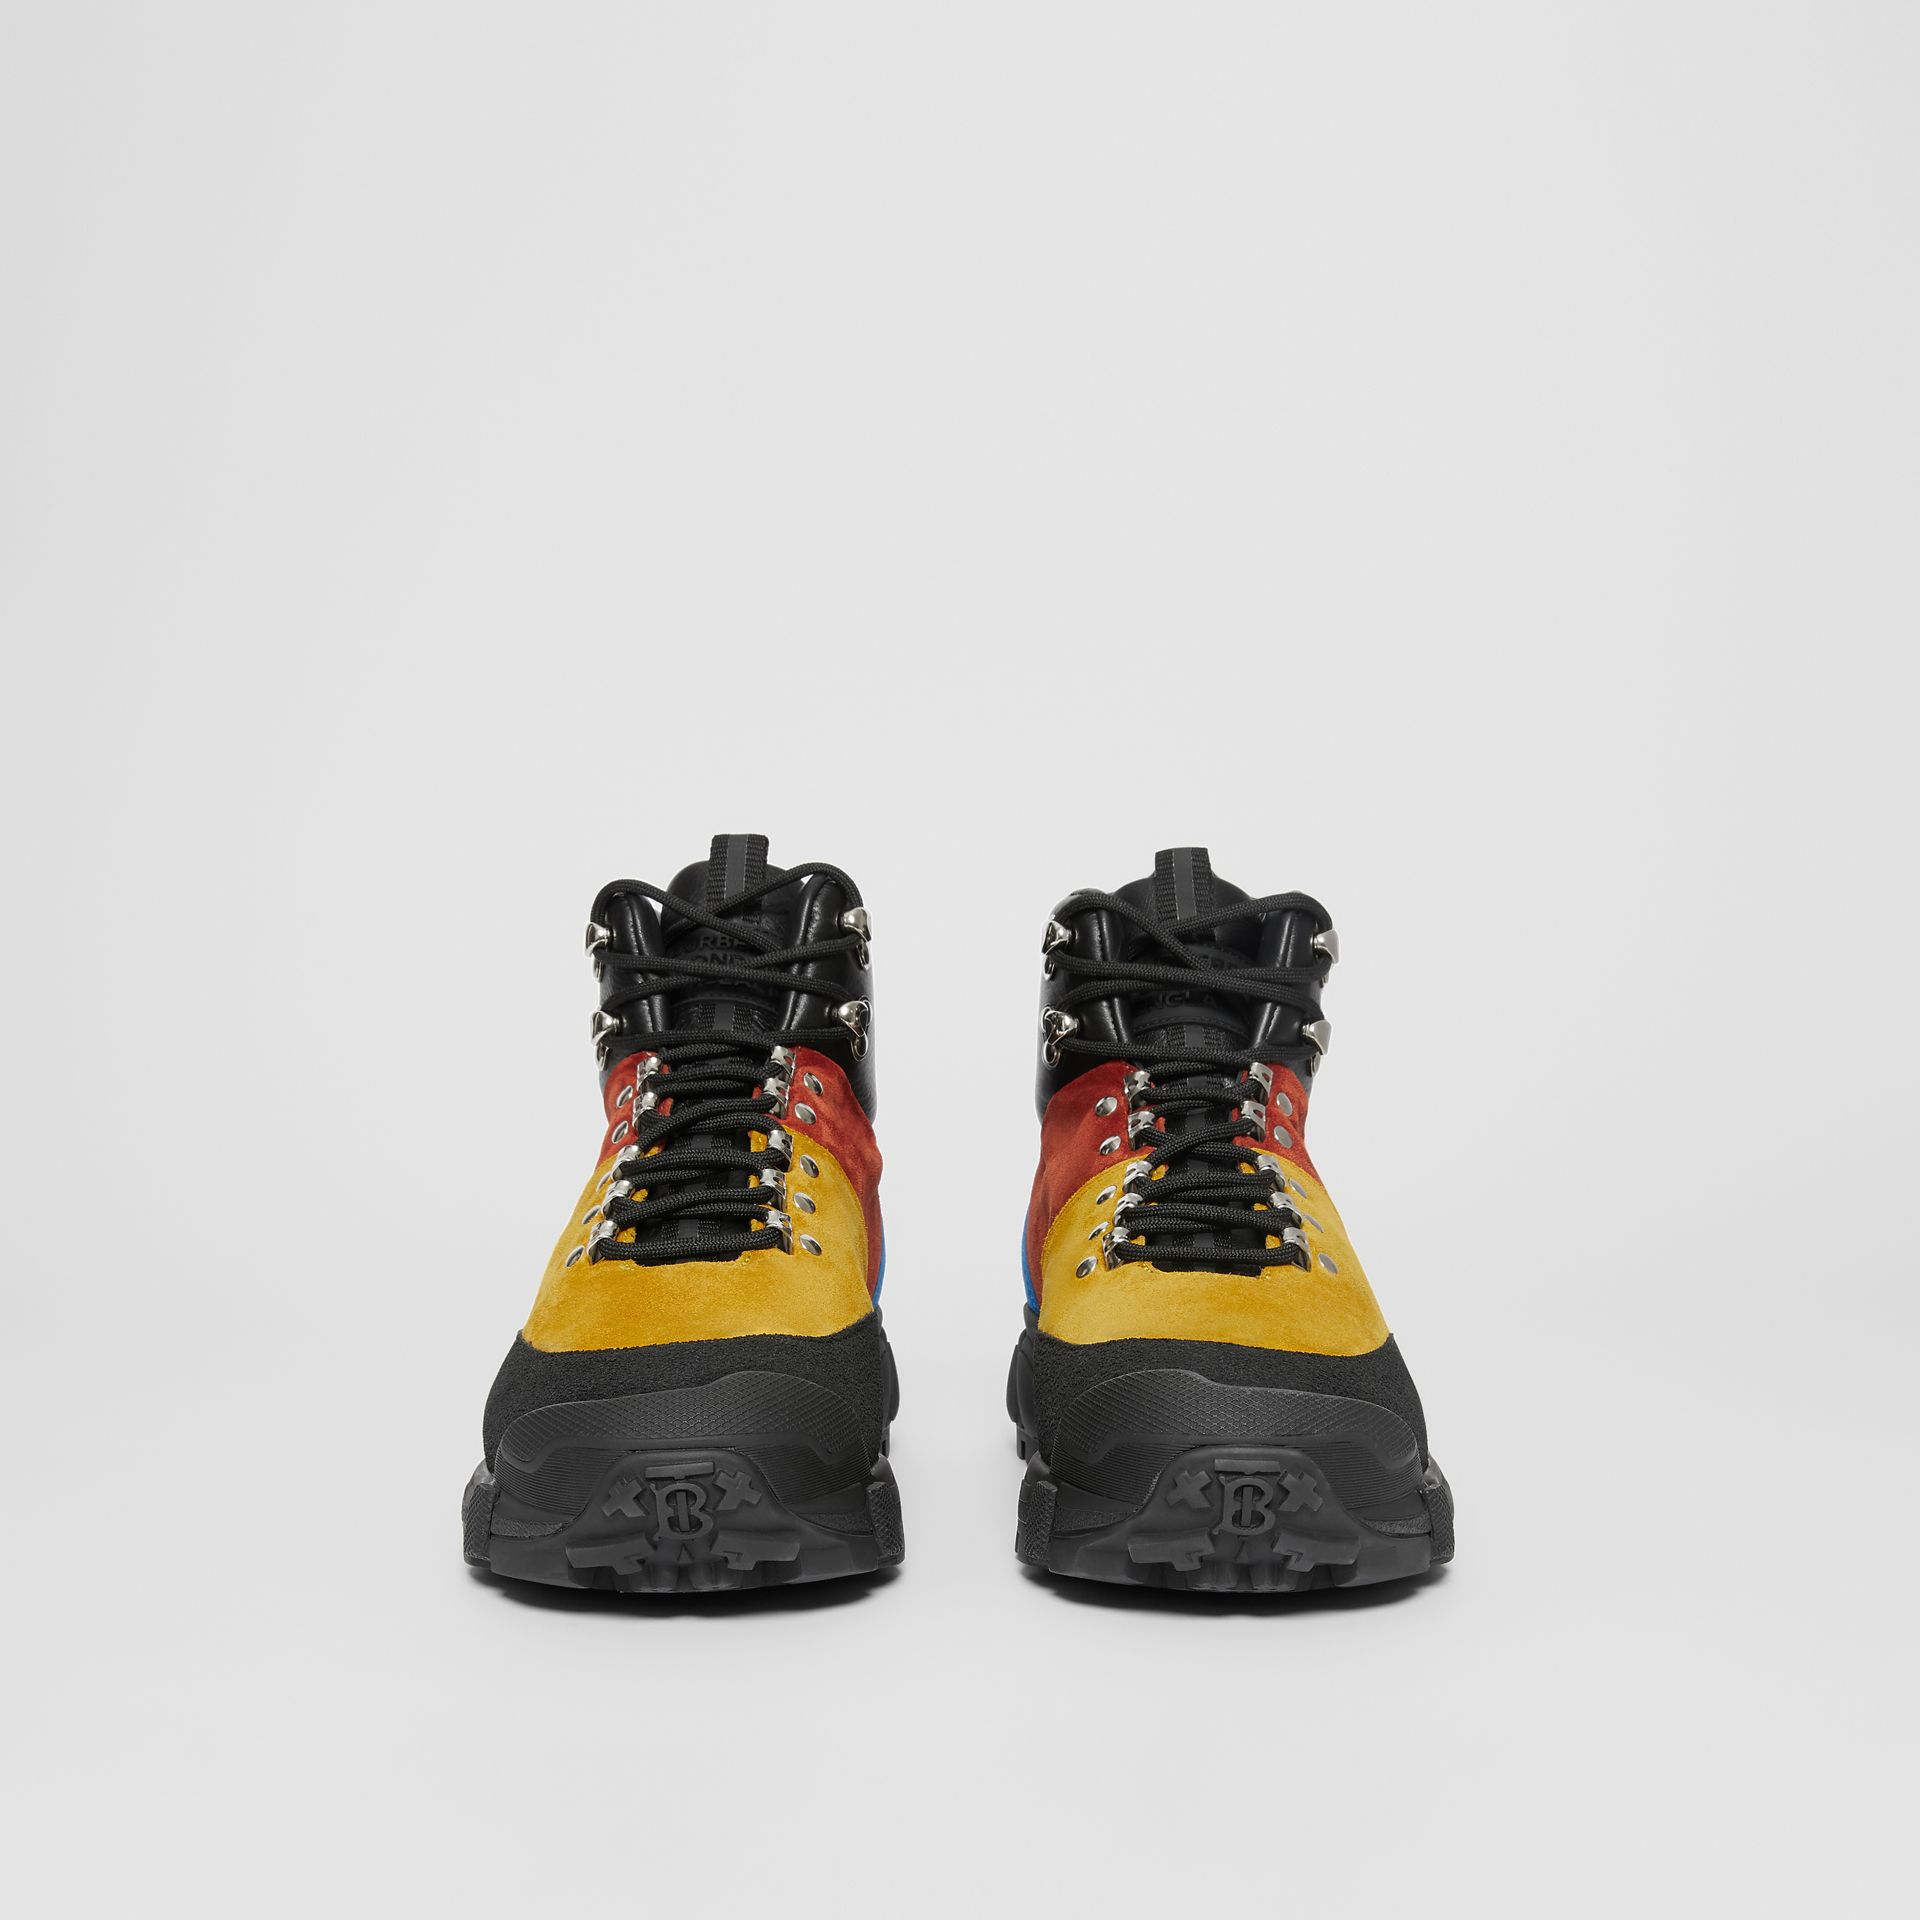 Suede and Leather Tor Boots in Yellow Orange - Men | Burberry United States - gallery image 3